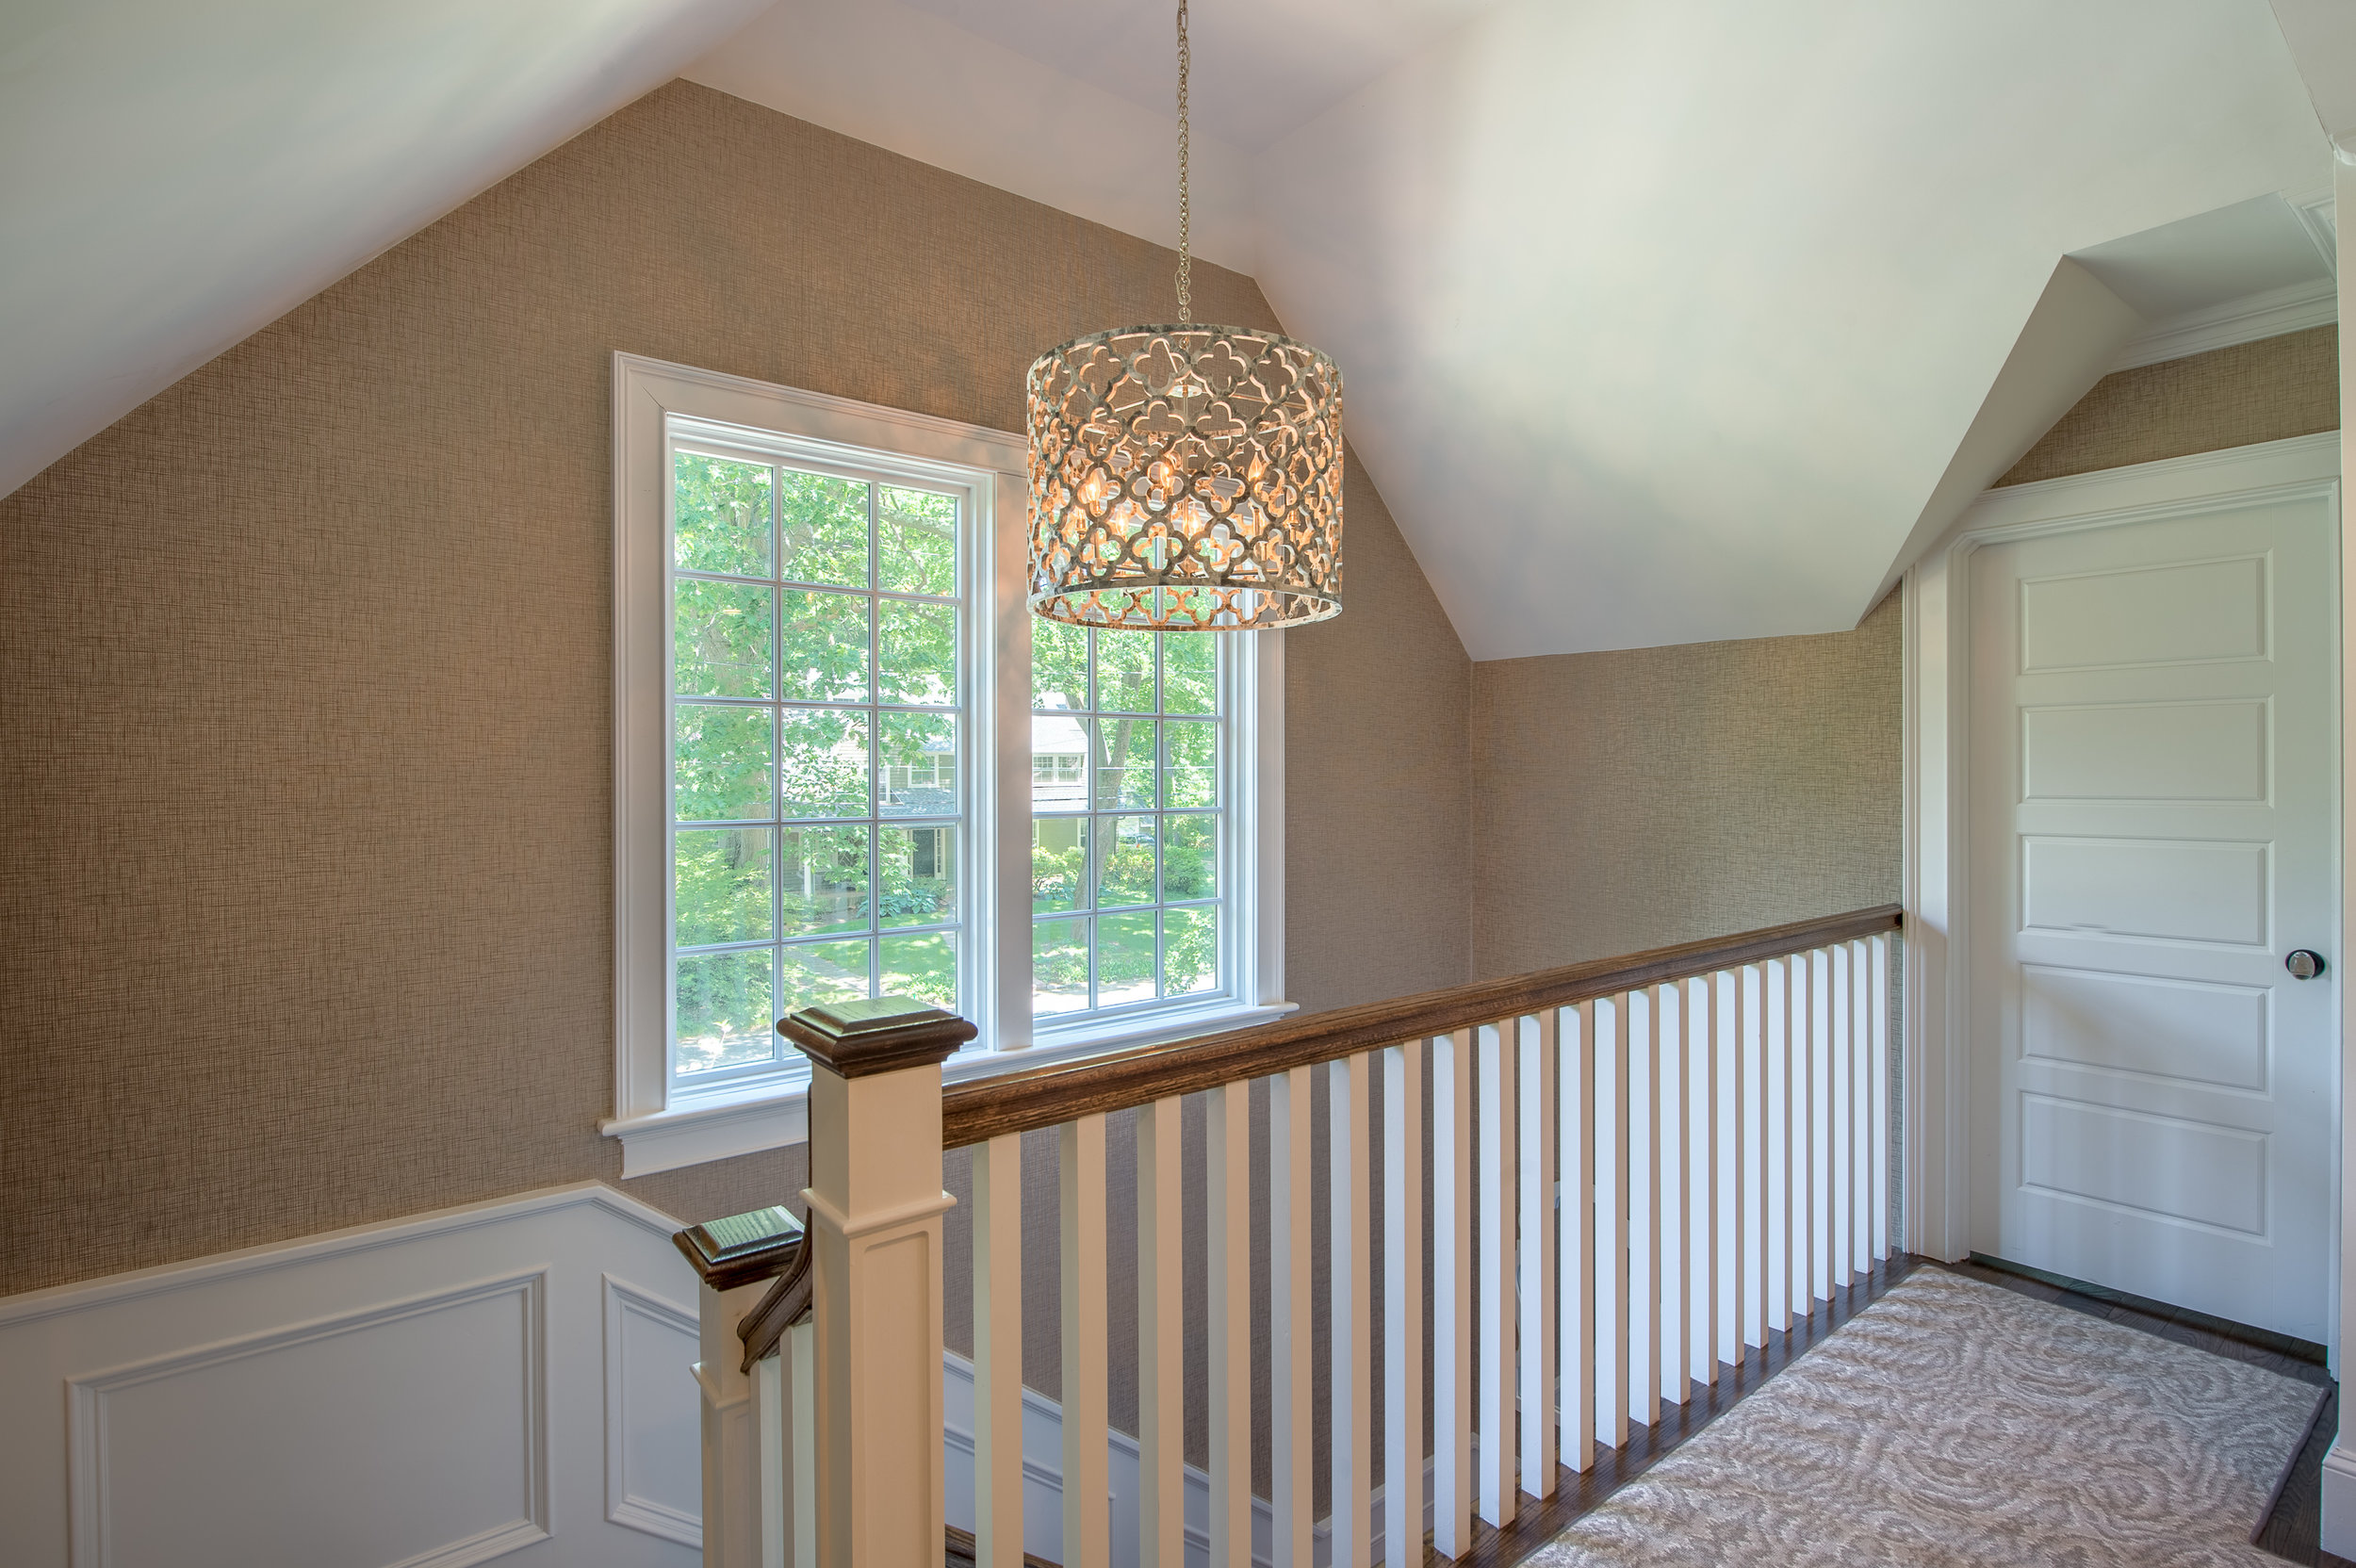 37 Livermore Road, Wellesley, MA (17 of 21).jpg